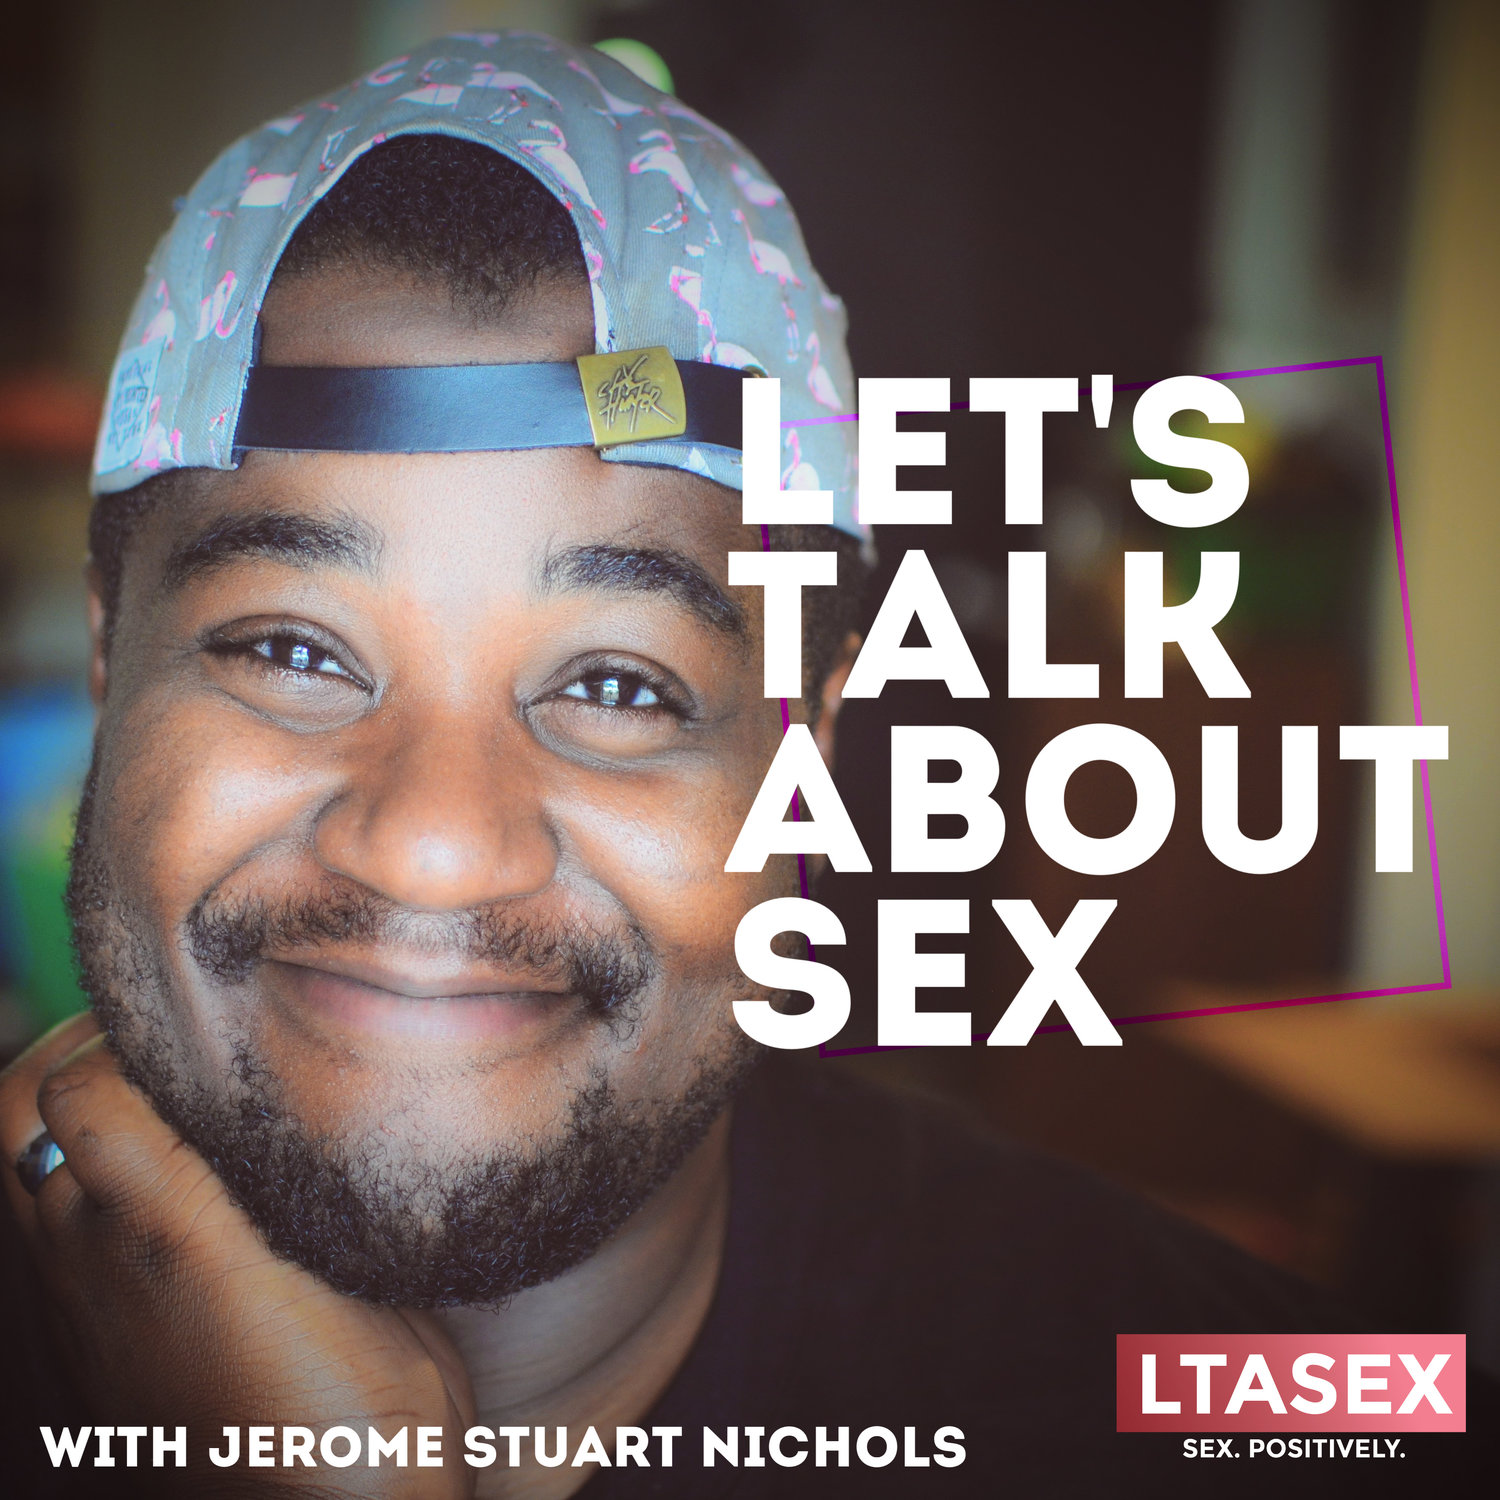 Let's Talk About Sex - LTASEX